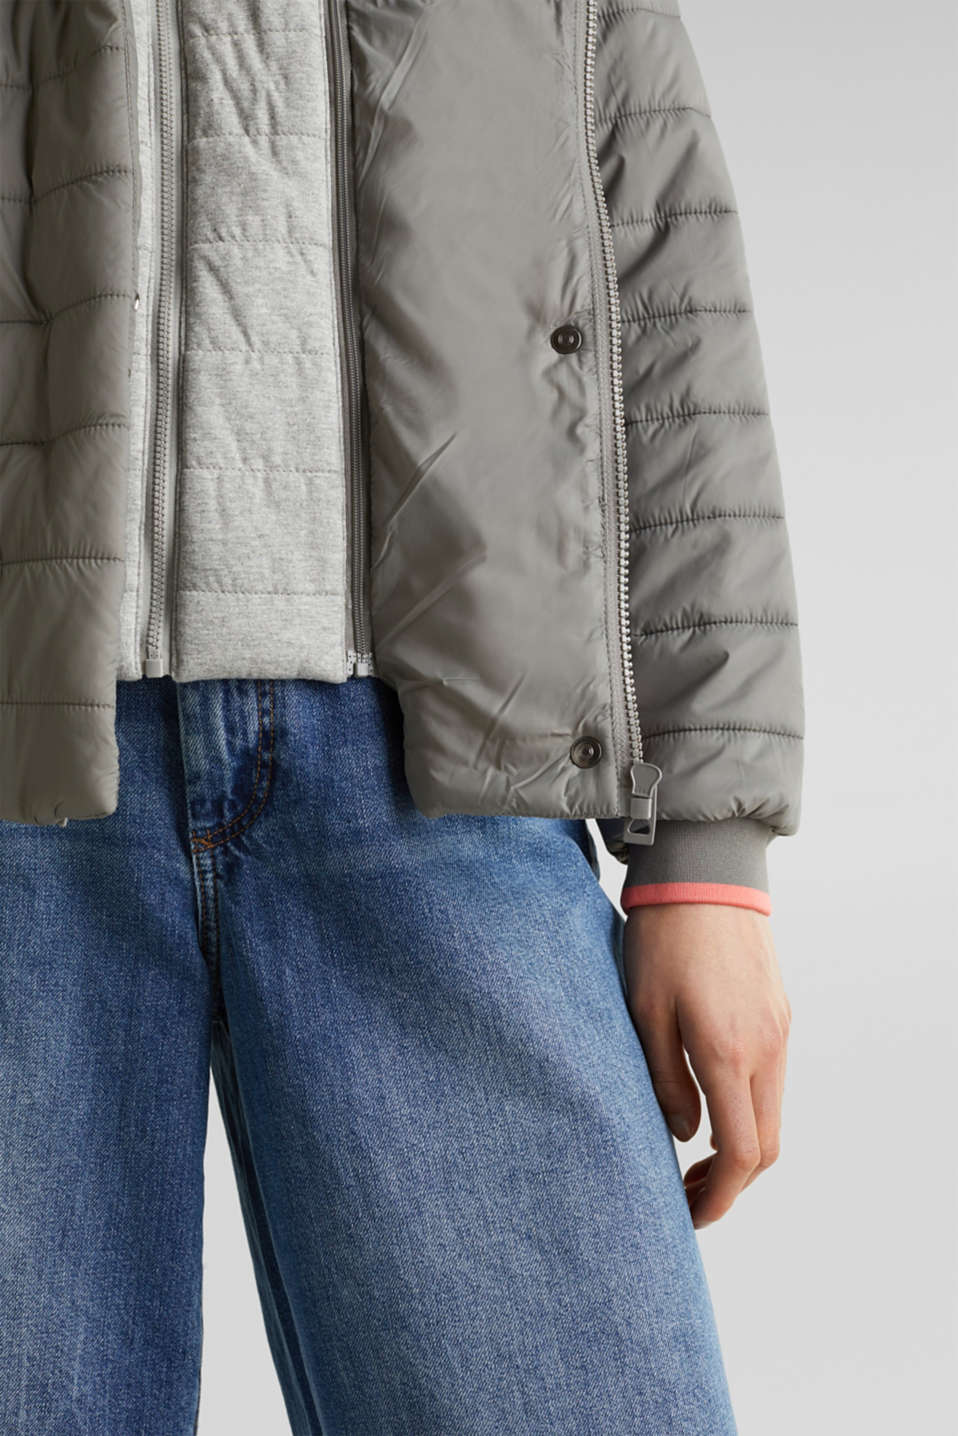 Jackets outdoor woven, GREY 5, detail image number 5